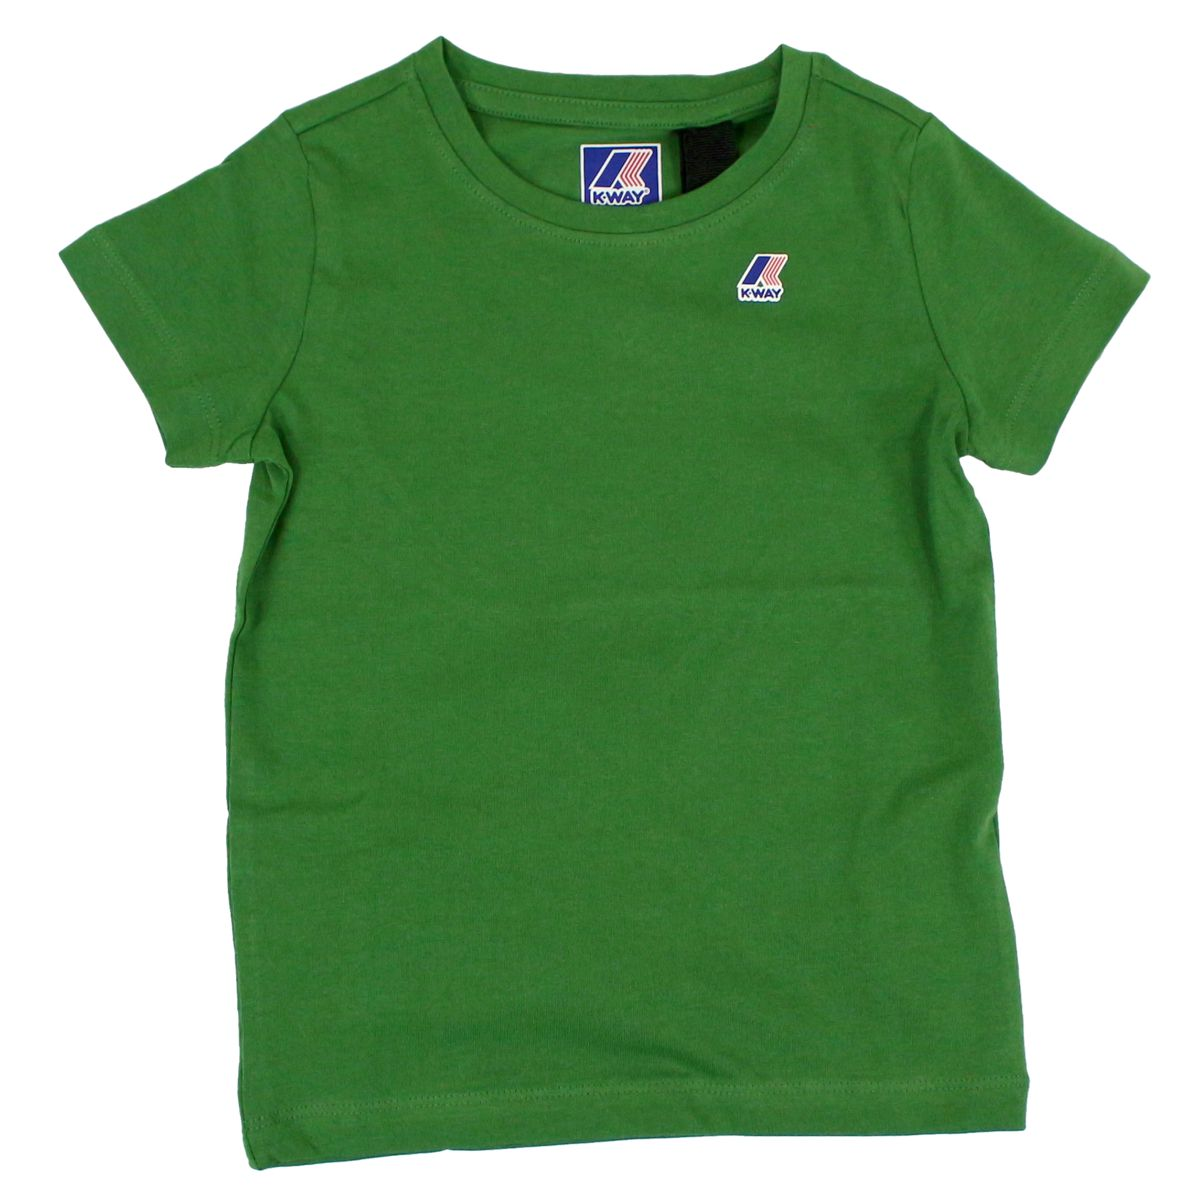 Le Vrai Edouard T-shirt Green K-Way